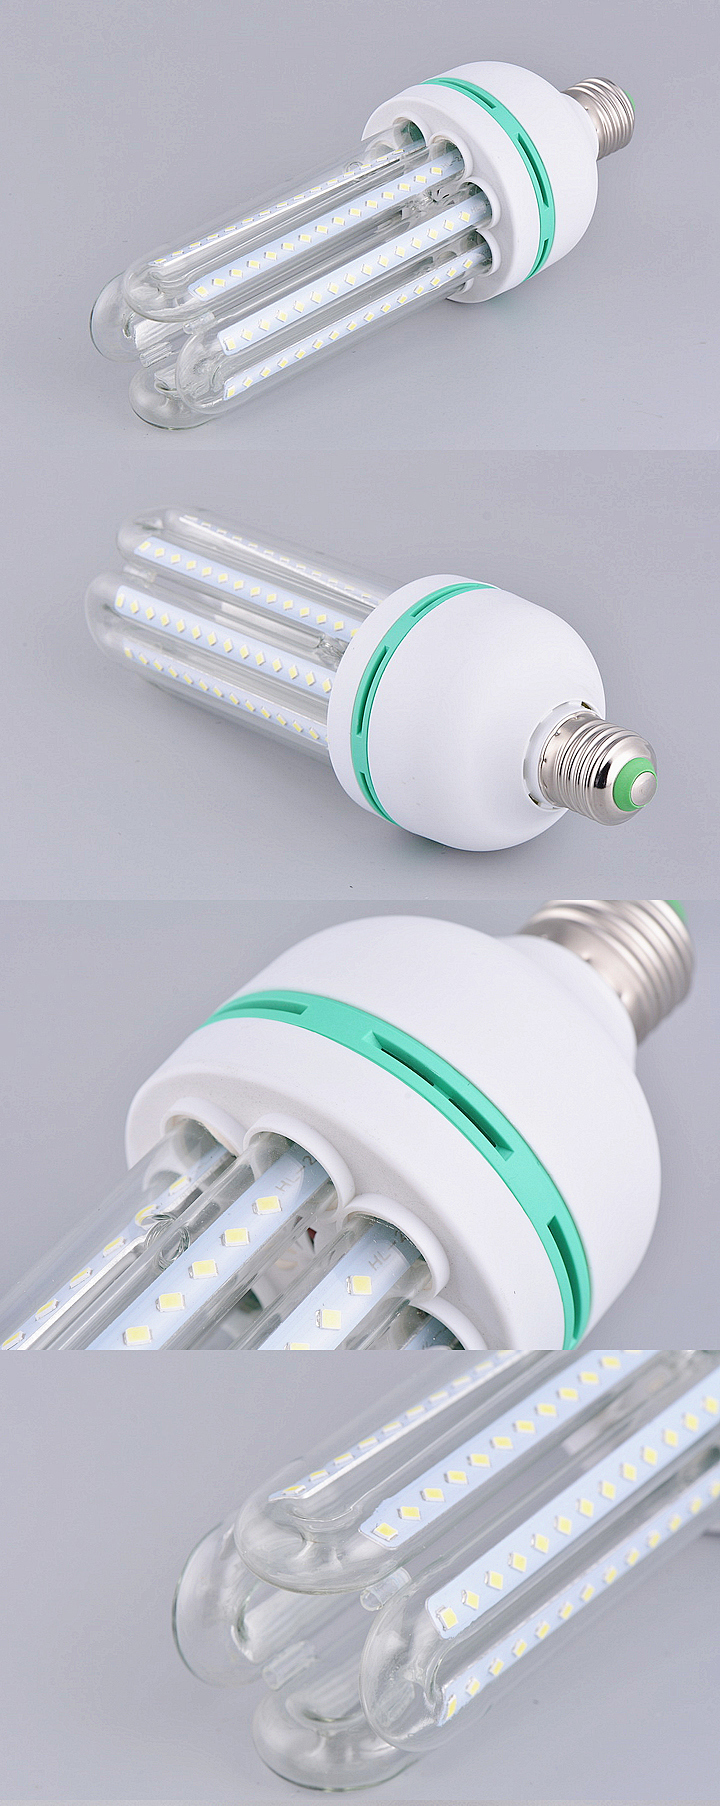 2018 Hot Sale Full Spiral Energy Saver Light E27 E14 LED Bulbs with Good Raw Material